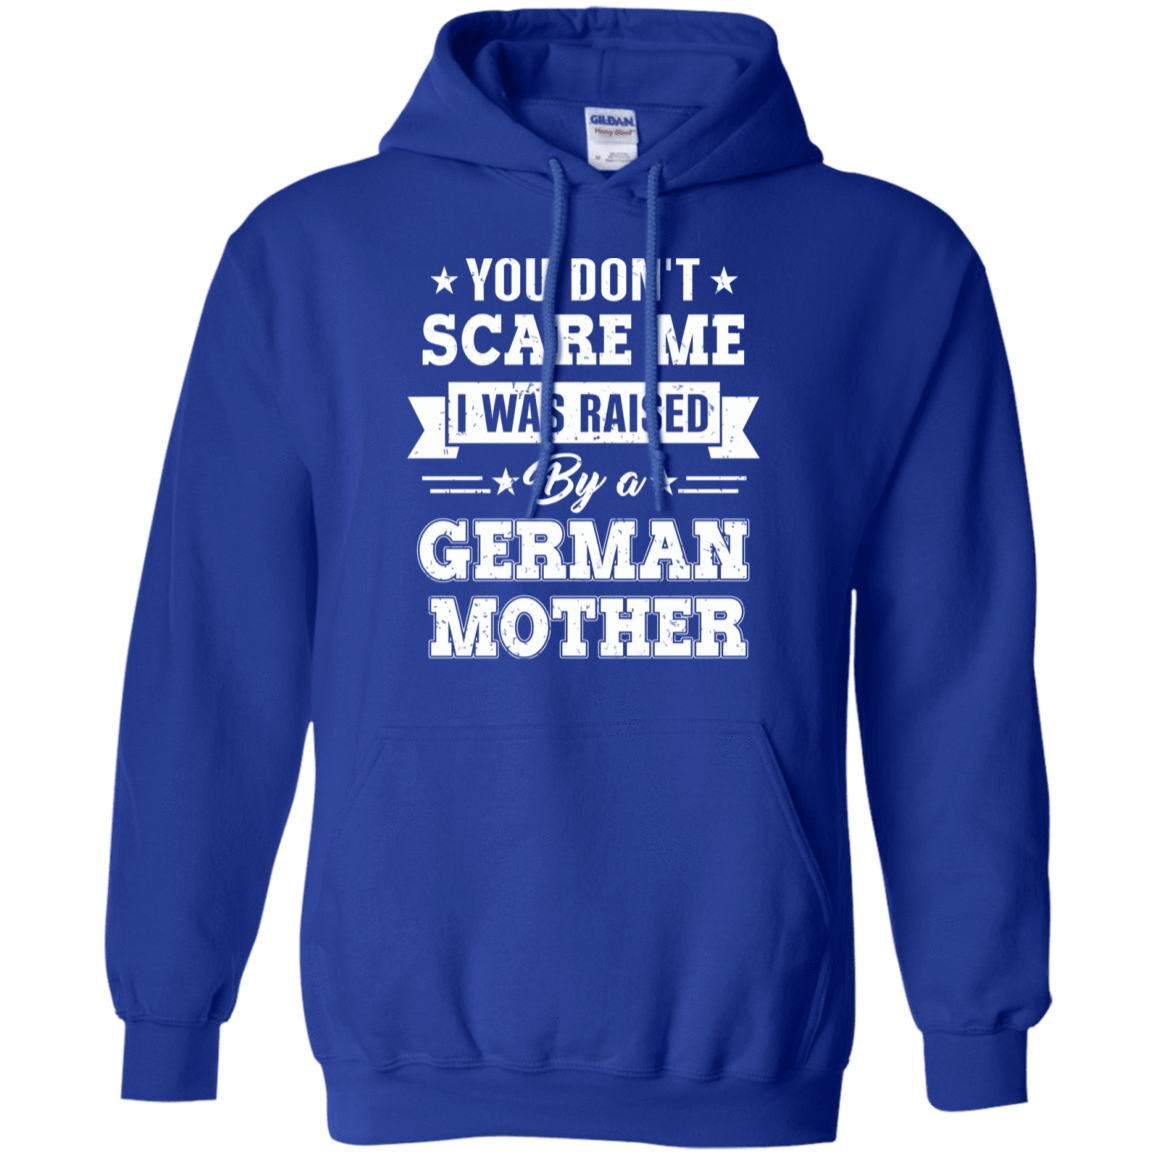 You Don't Scare Me I Was Raised By A German Mother 541-4765-72513783-23175 - Tee Ript